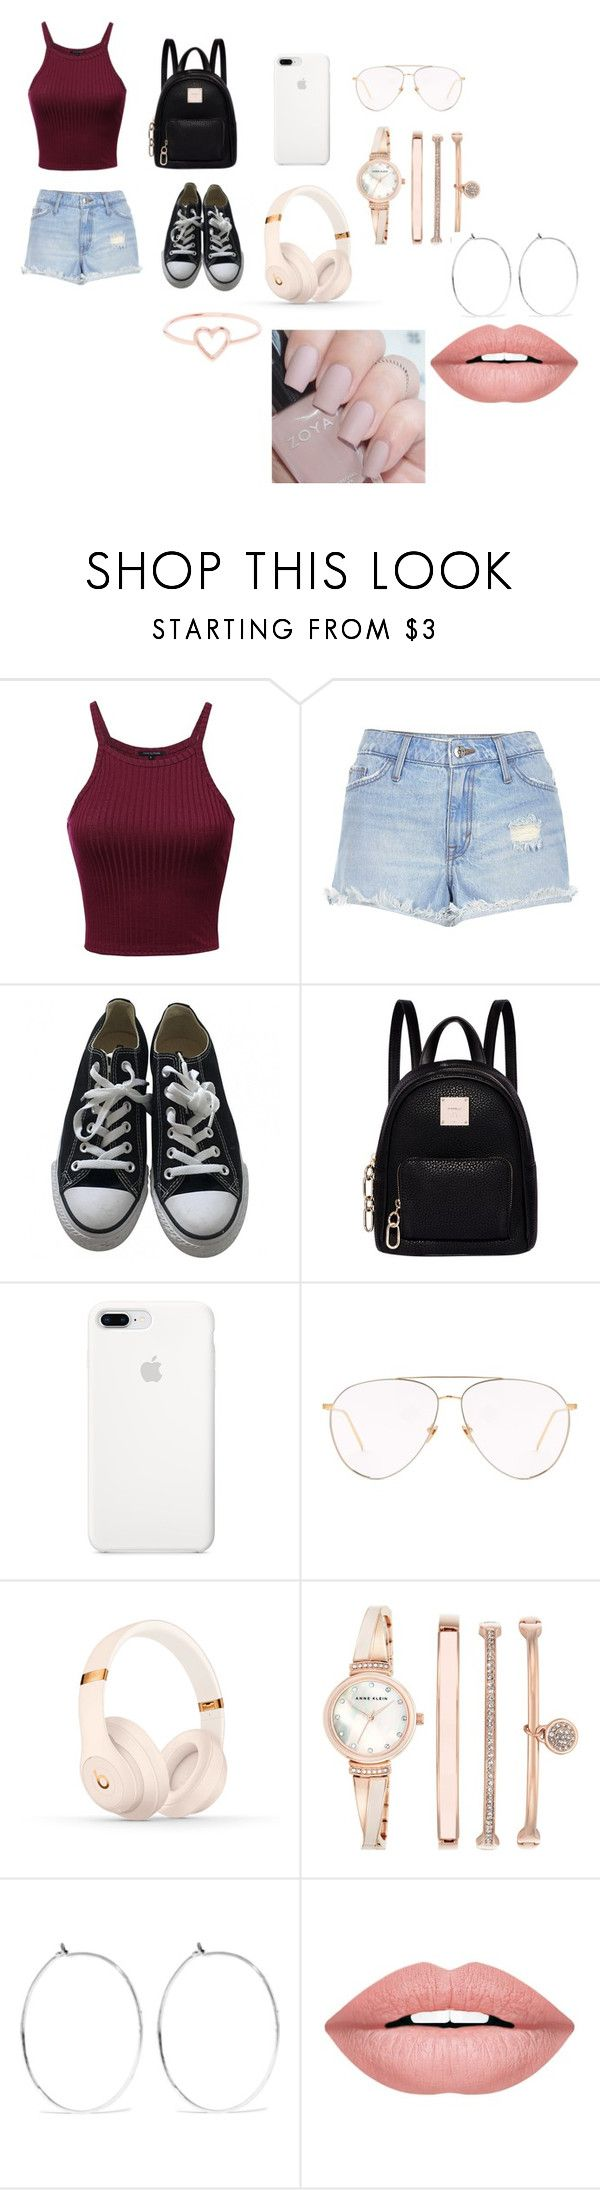 """""""simPLE"""" by skylar-coulter on Polyvore featuring River Island, Converse, Fiorelli, Linda Farrow, Beats by Dr. Dre, Anne Klein, Catbird, Forever 21 and Love Is"""